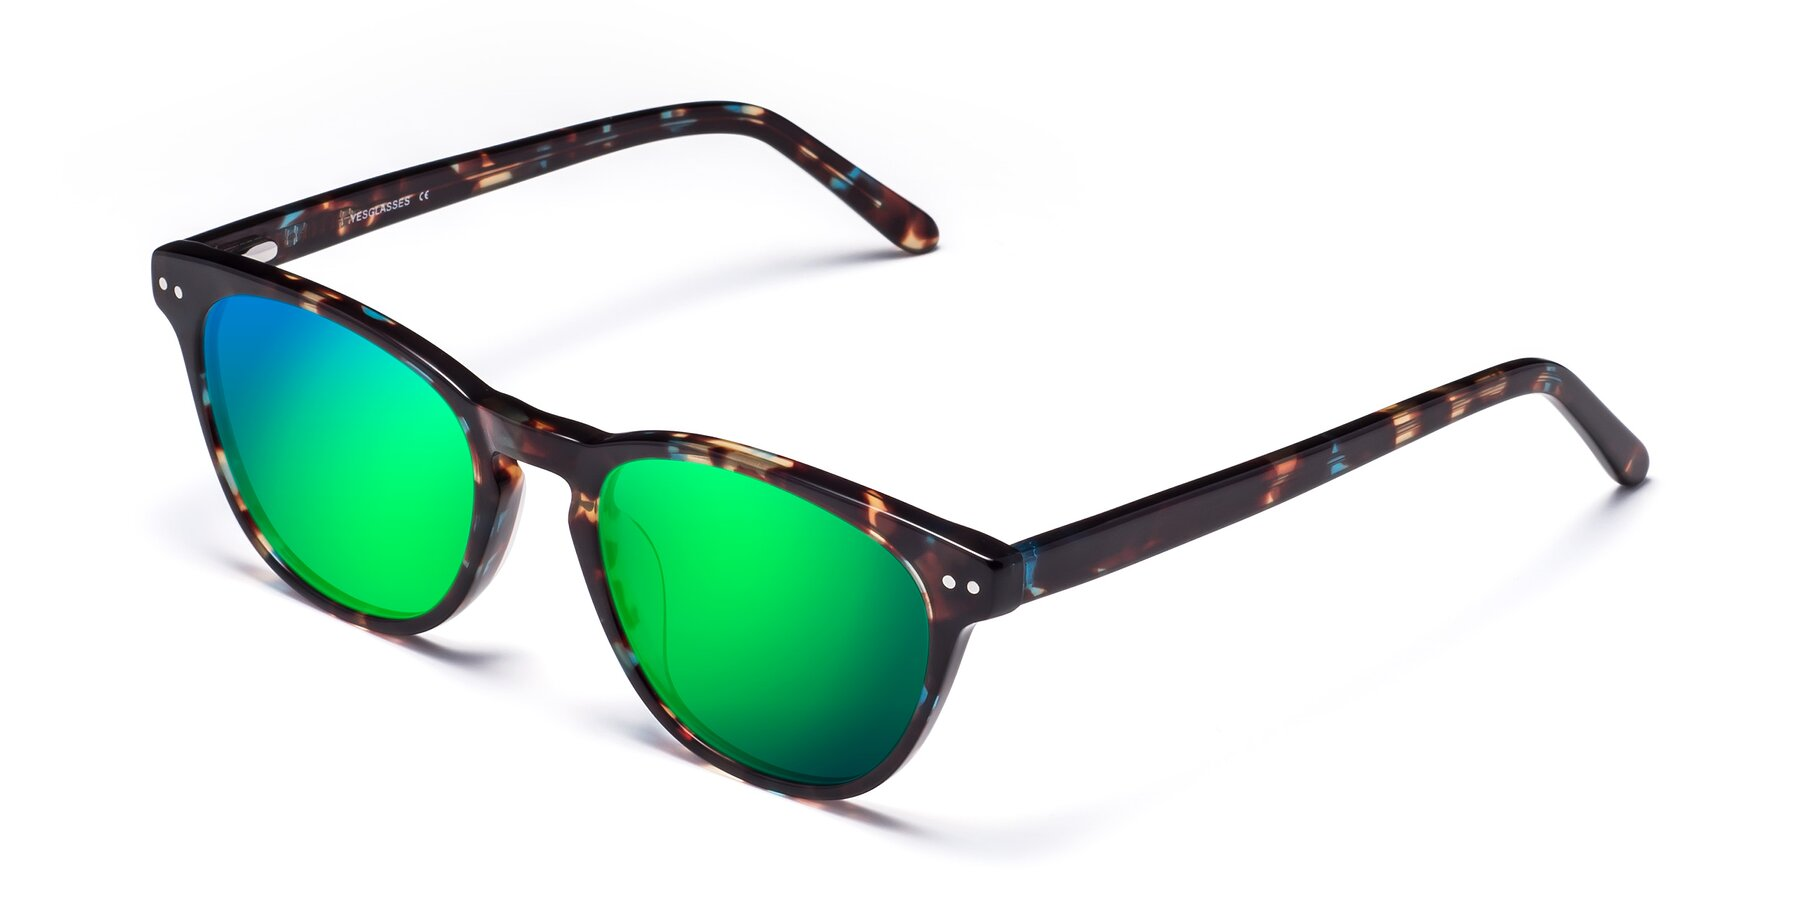 Angle of Blaze in Tortoise-Blue with Green Mirrored Lenses